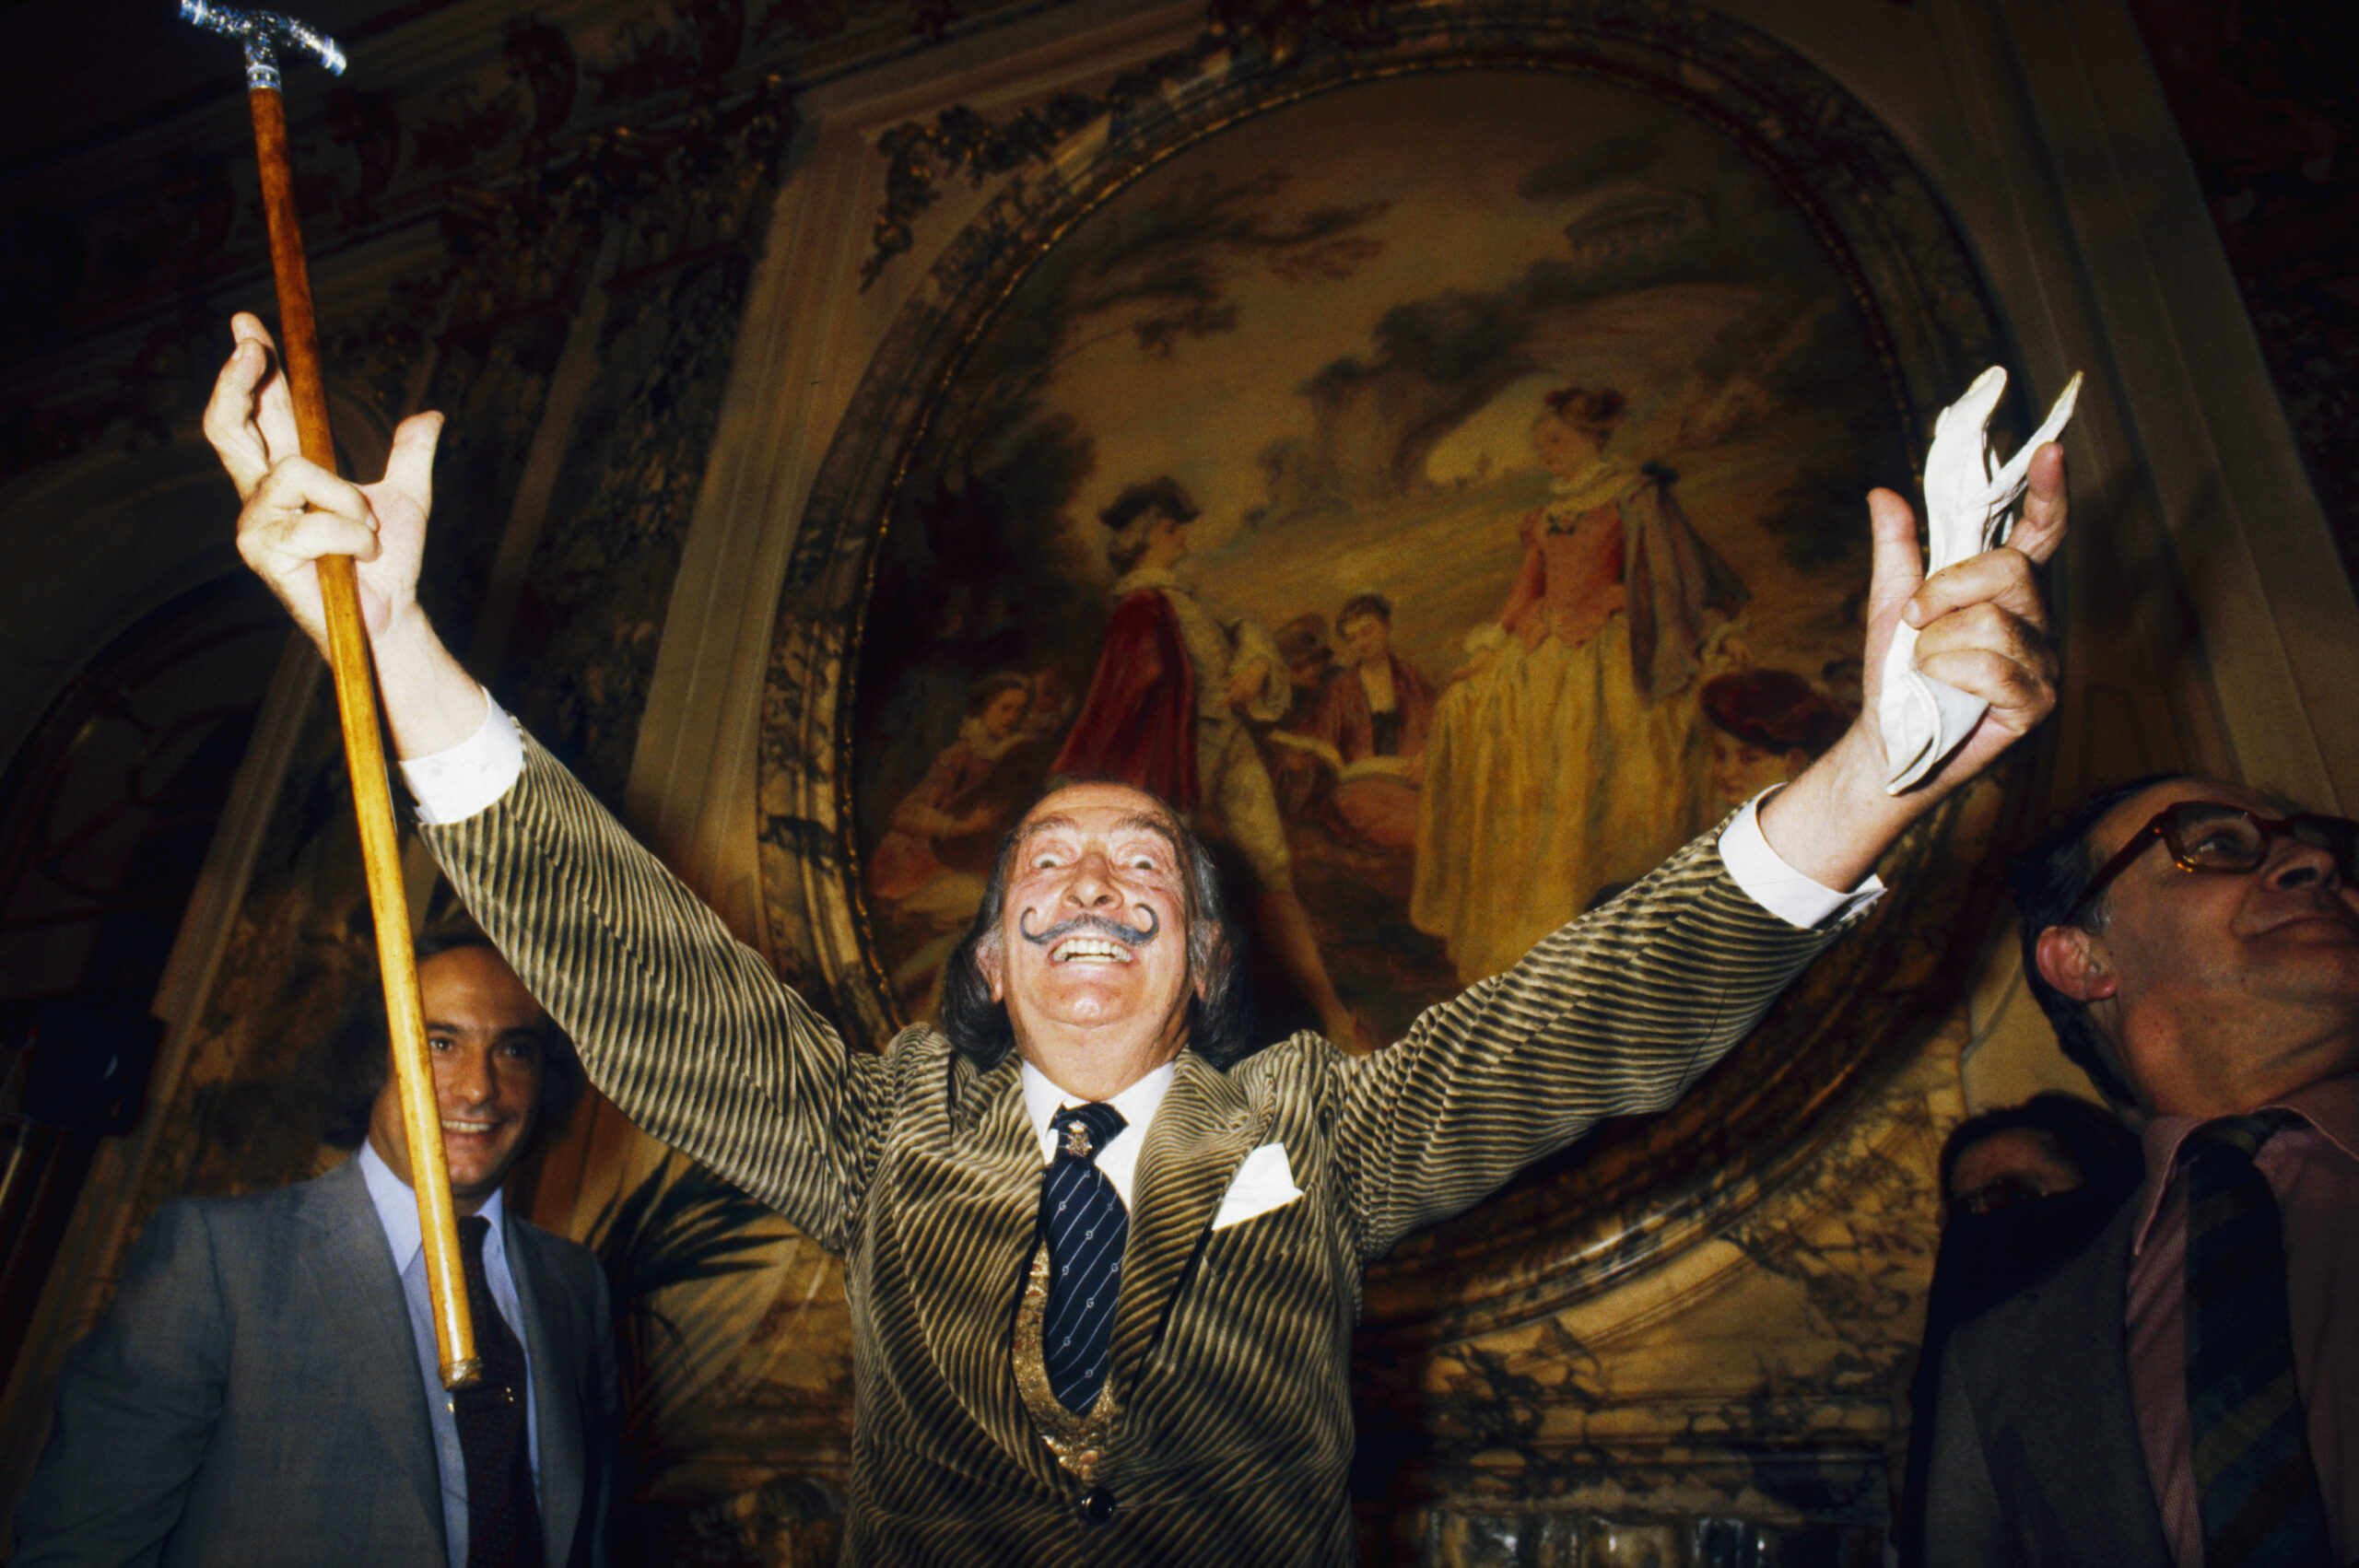 A Psychic Has Been Ordered to Pay the Costs of Exhuming Salvador Dalí's Corpse for a Failed Paternity Test | artnet News